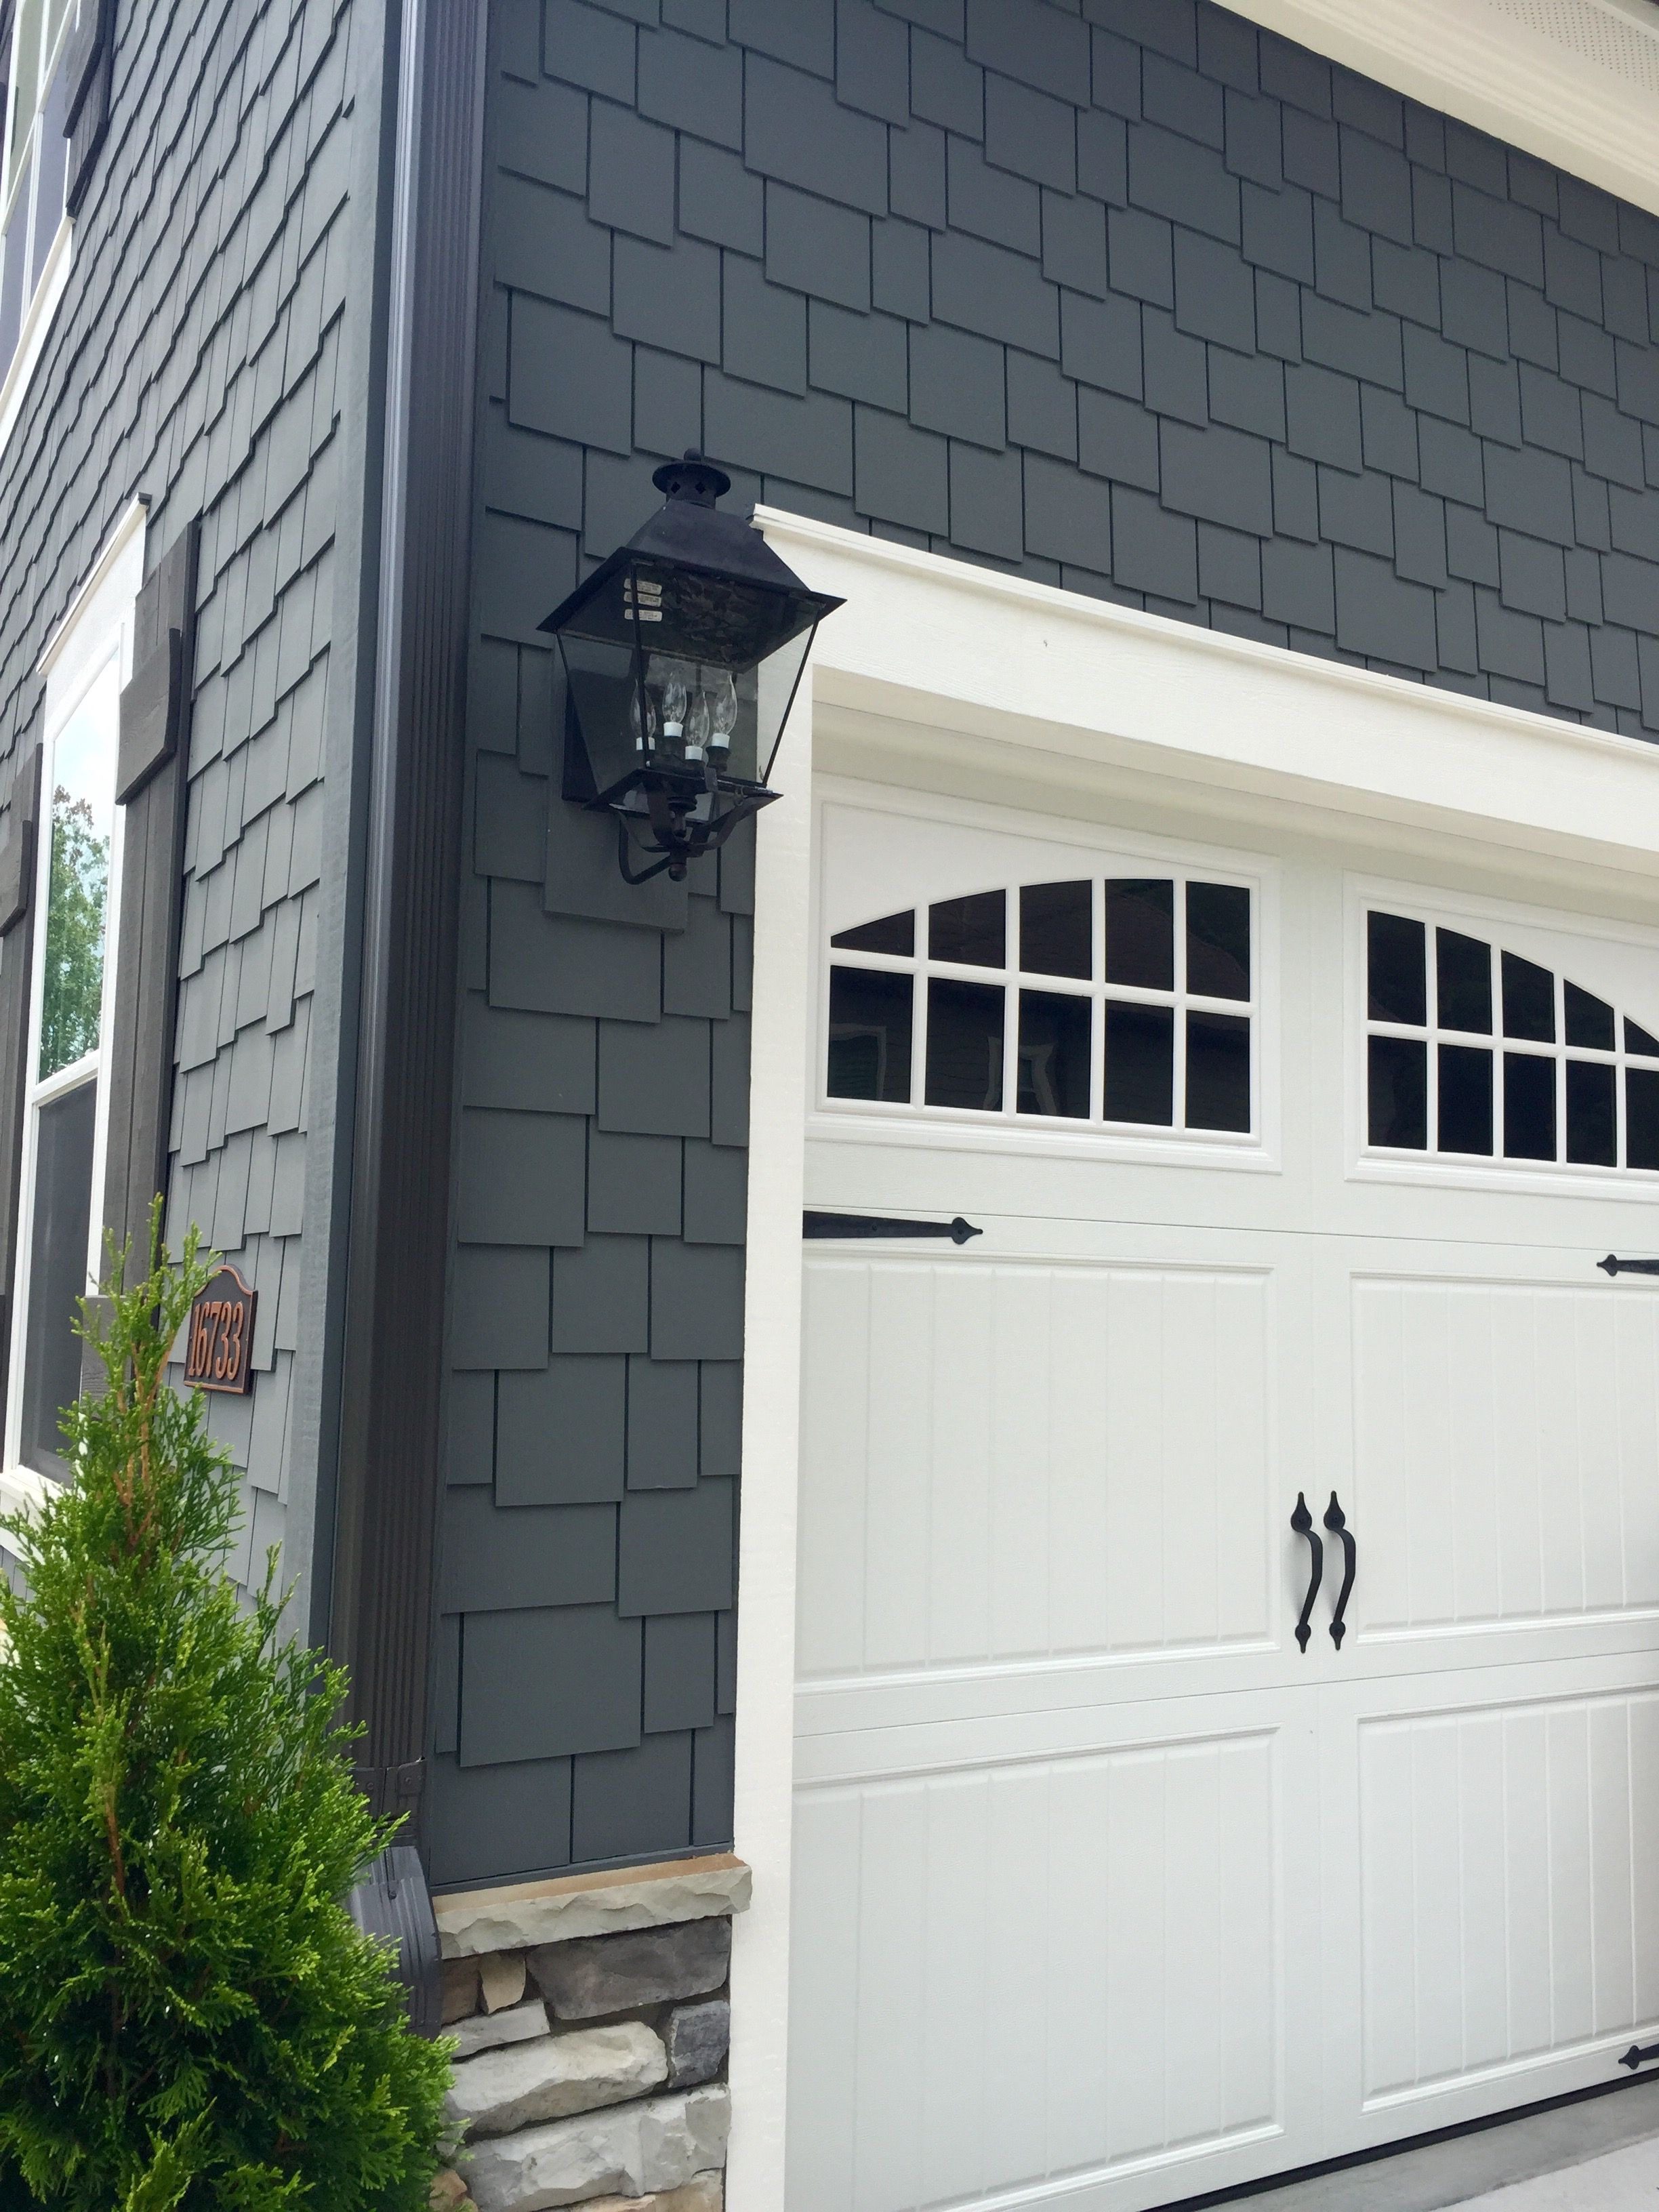 Garage door interior trim - Arh Exterior Plan Woodcliff Exterior 52 Roof Oc Oakridge Williamsburg Gray Metal